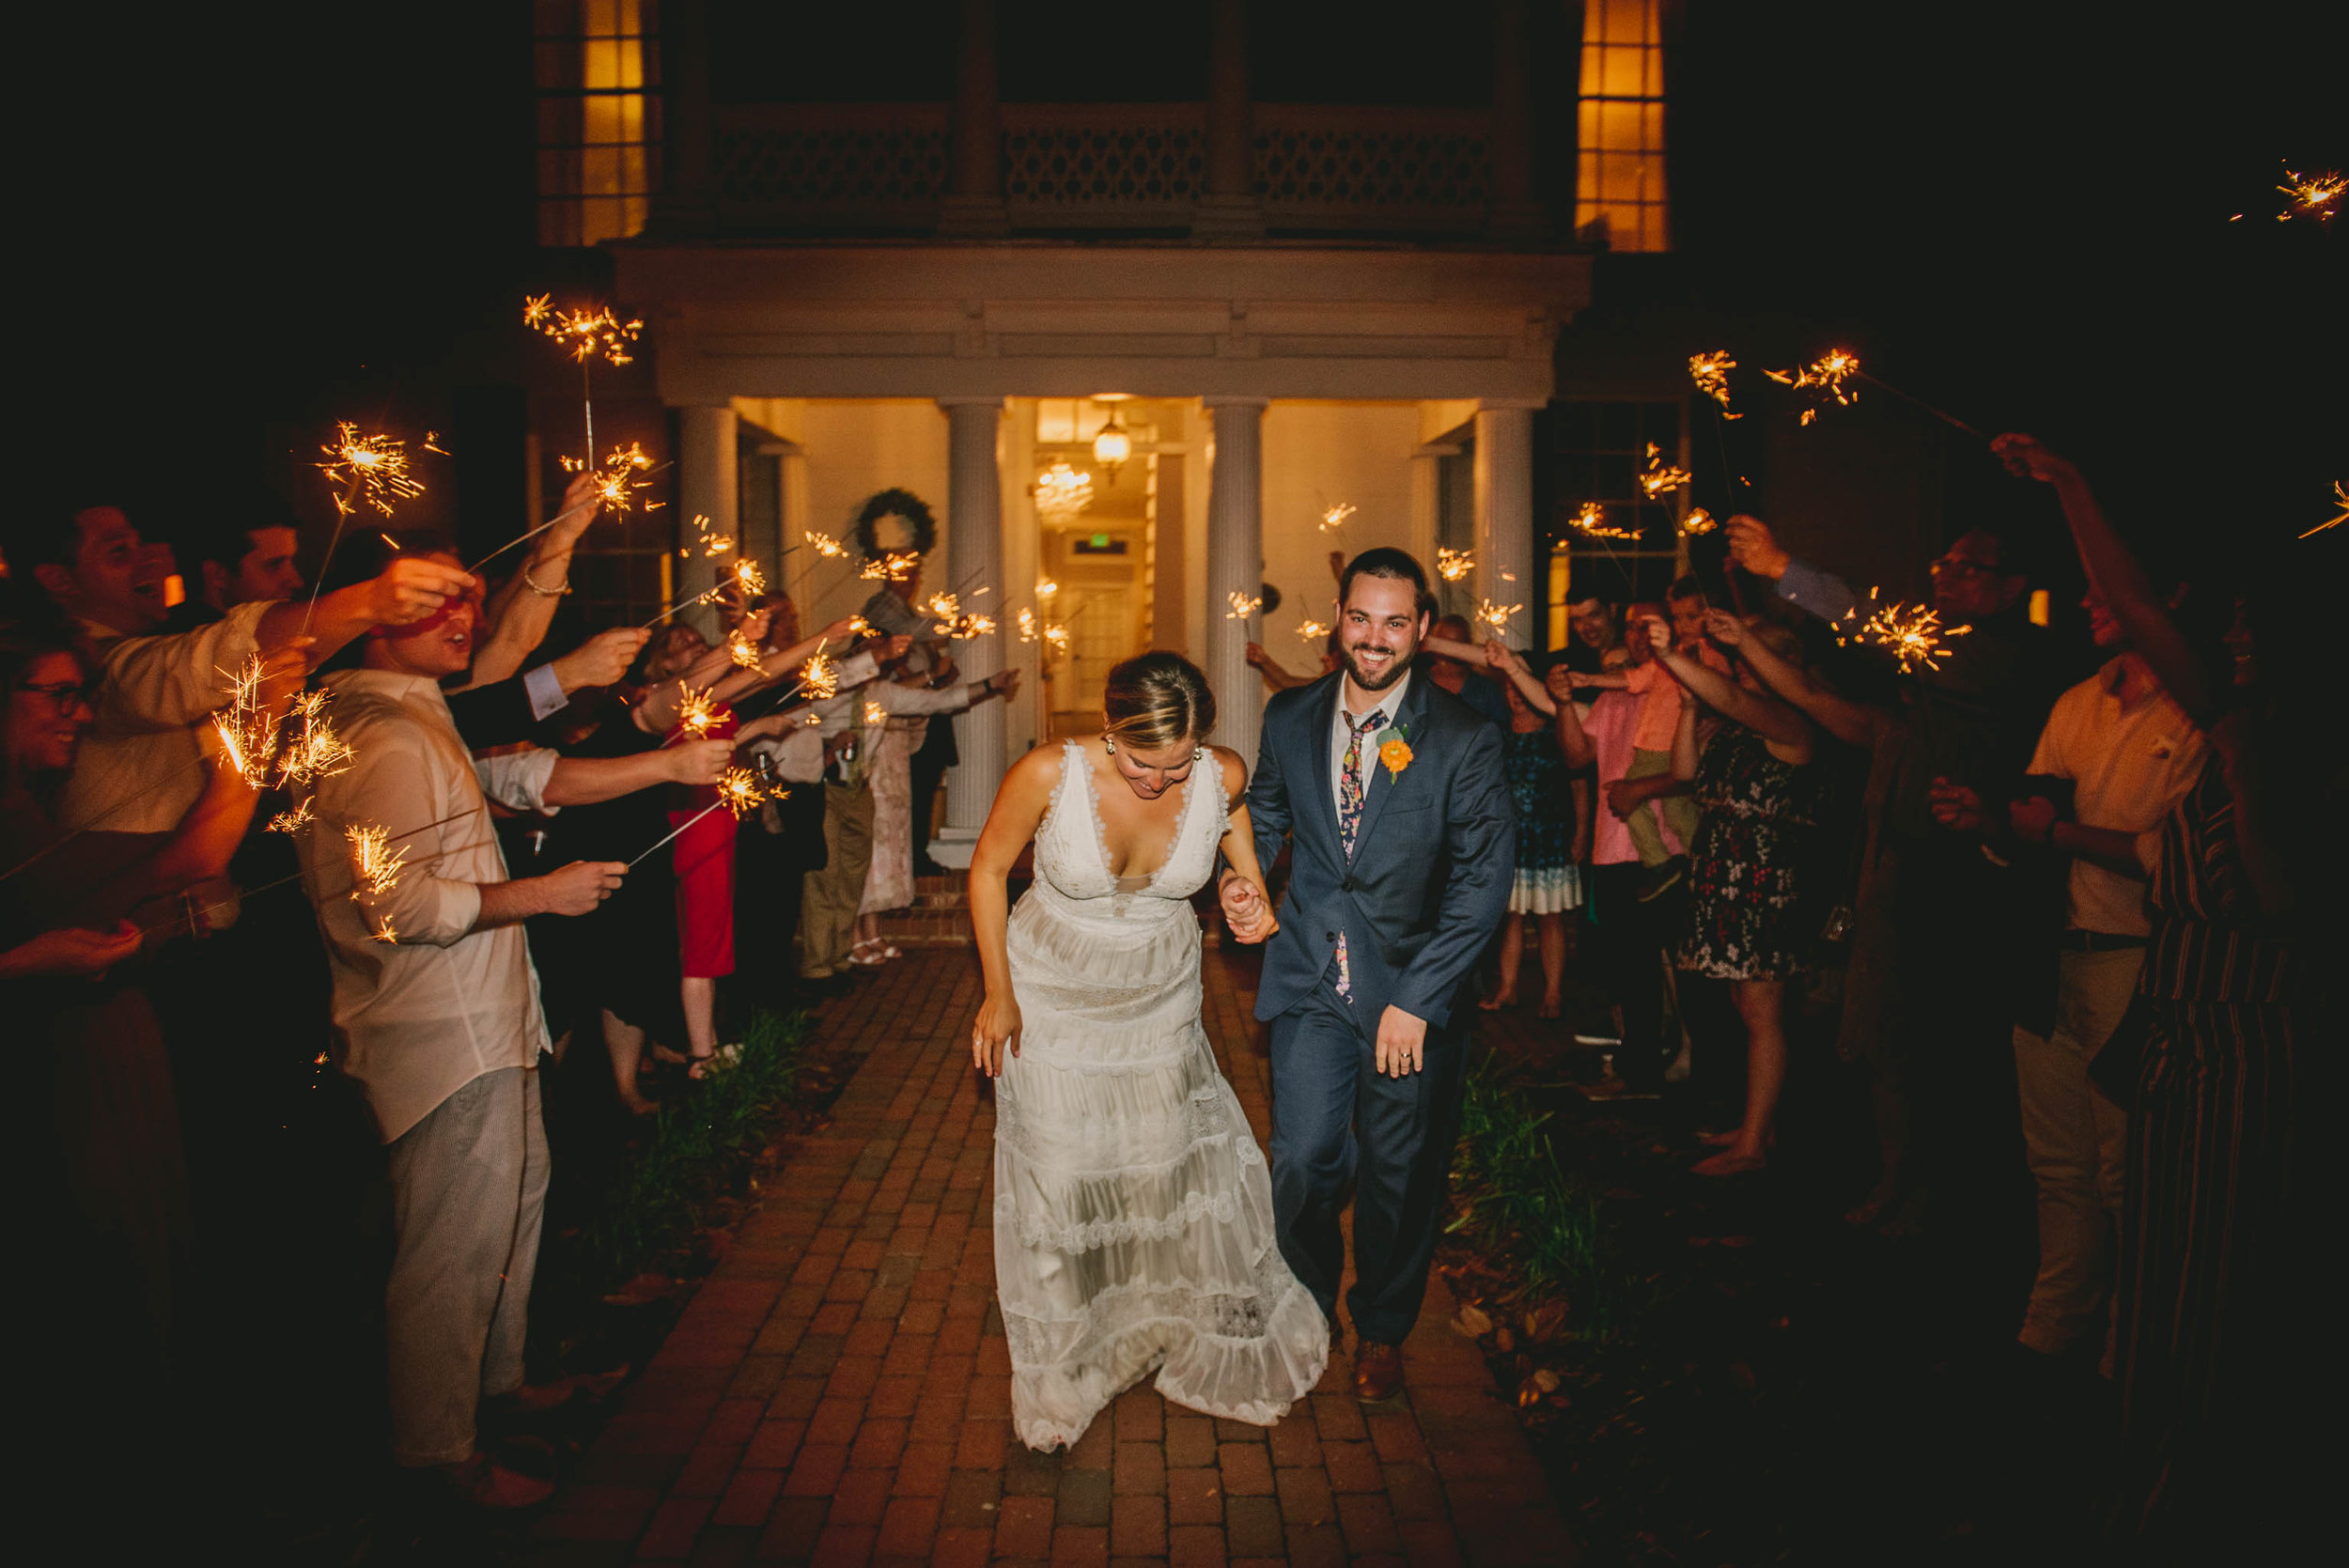 mims-house-wedding-bride-and-groom-sparkler-exit-photo.jpg